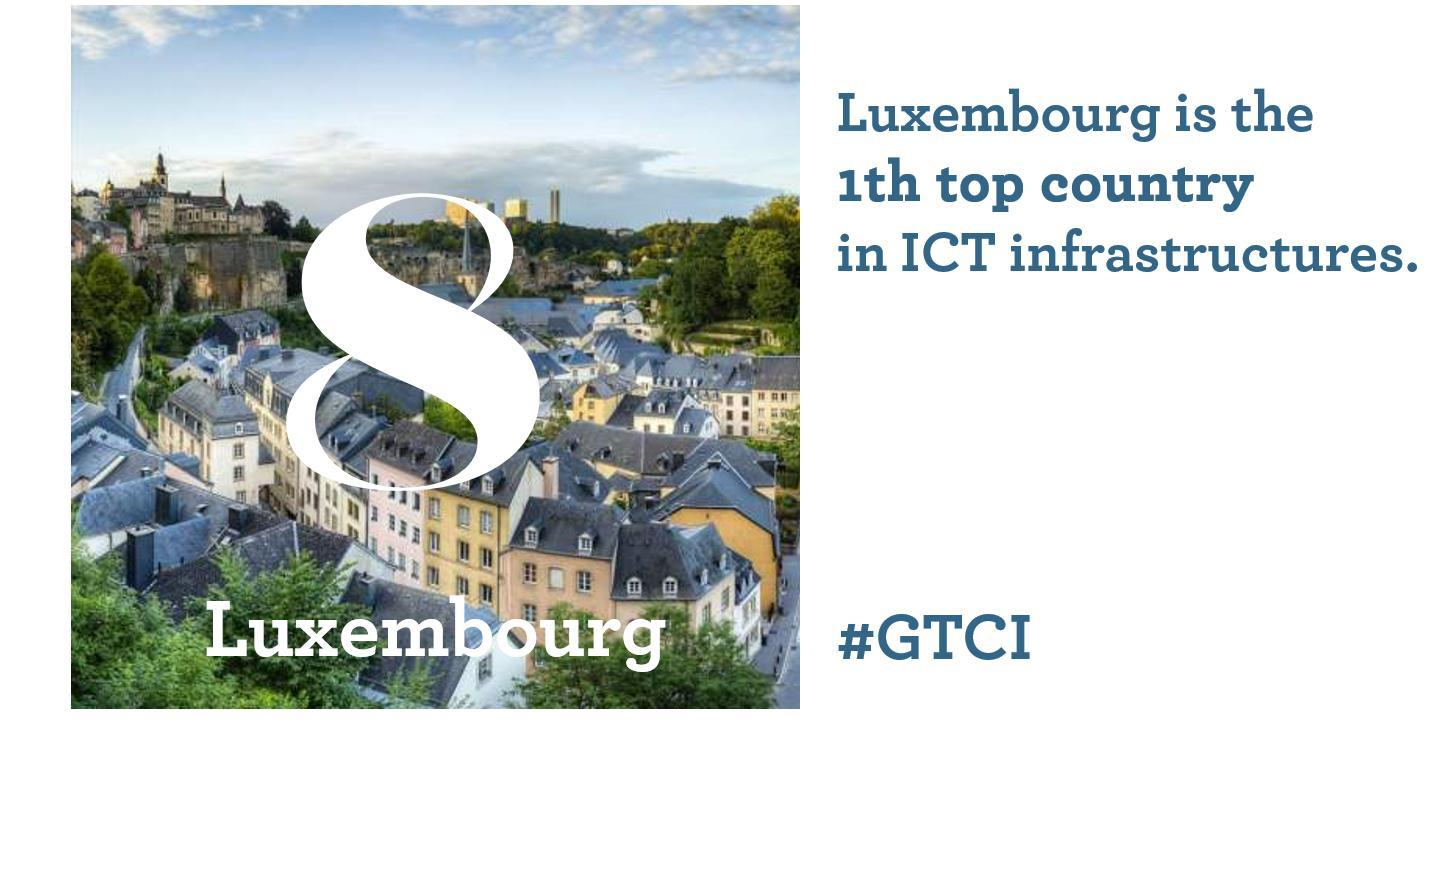 GTCI 2020 Luxembourg The Adecco Group Badenoch + Clark